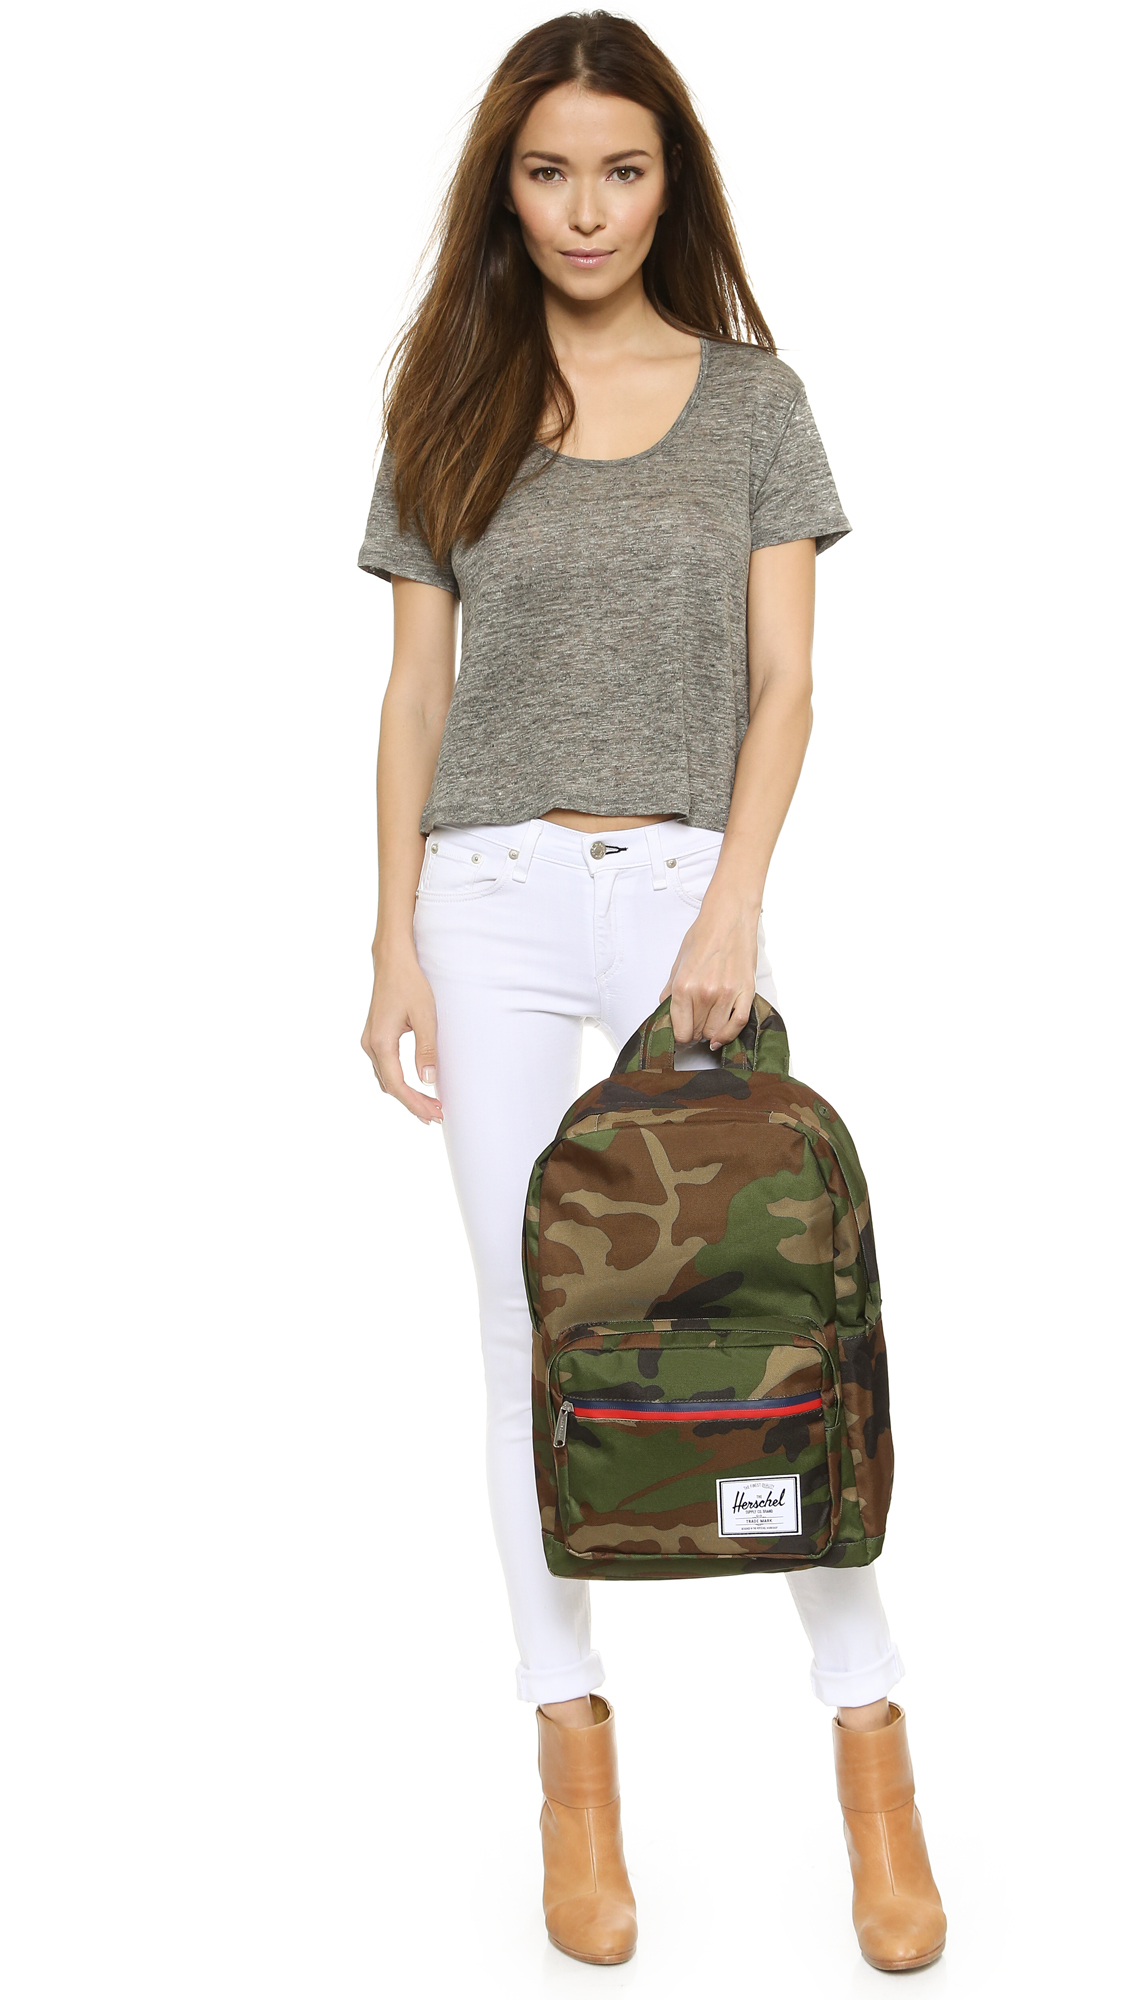 Supply Co Woodland Lyst Pop Herschel Backpack Quiz Camonavy 7HUSZAqwT